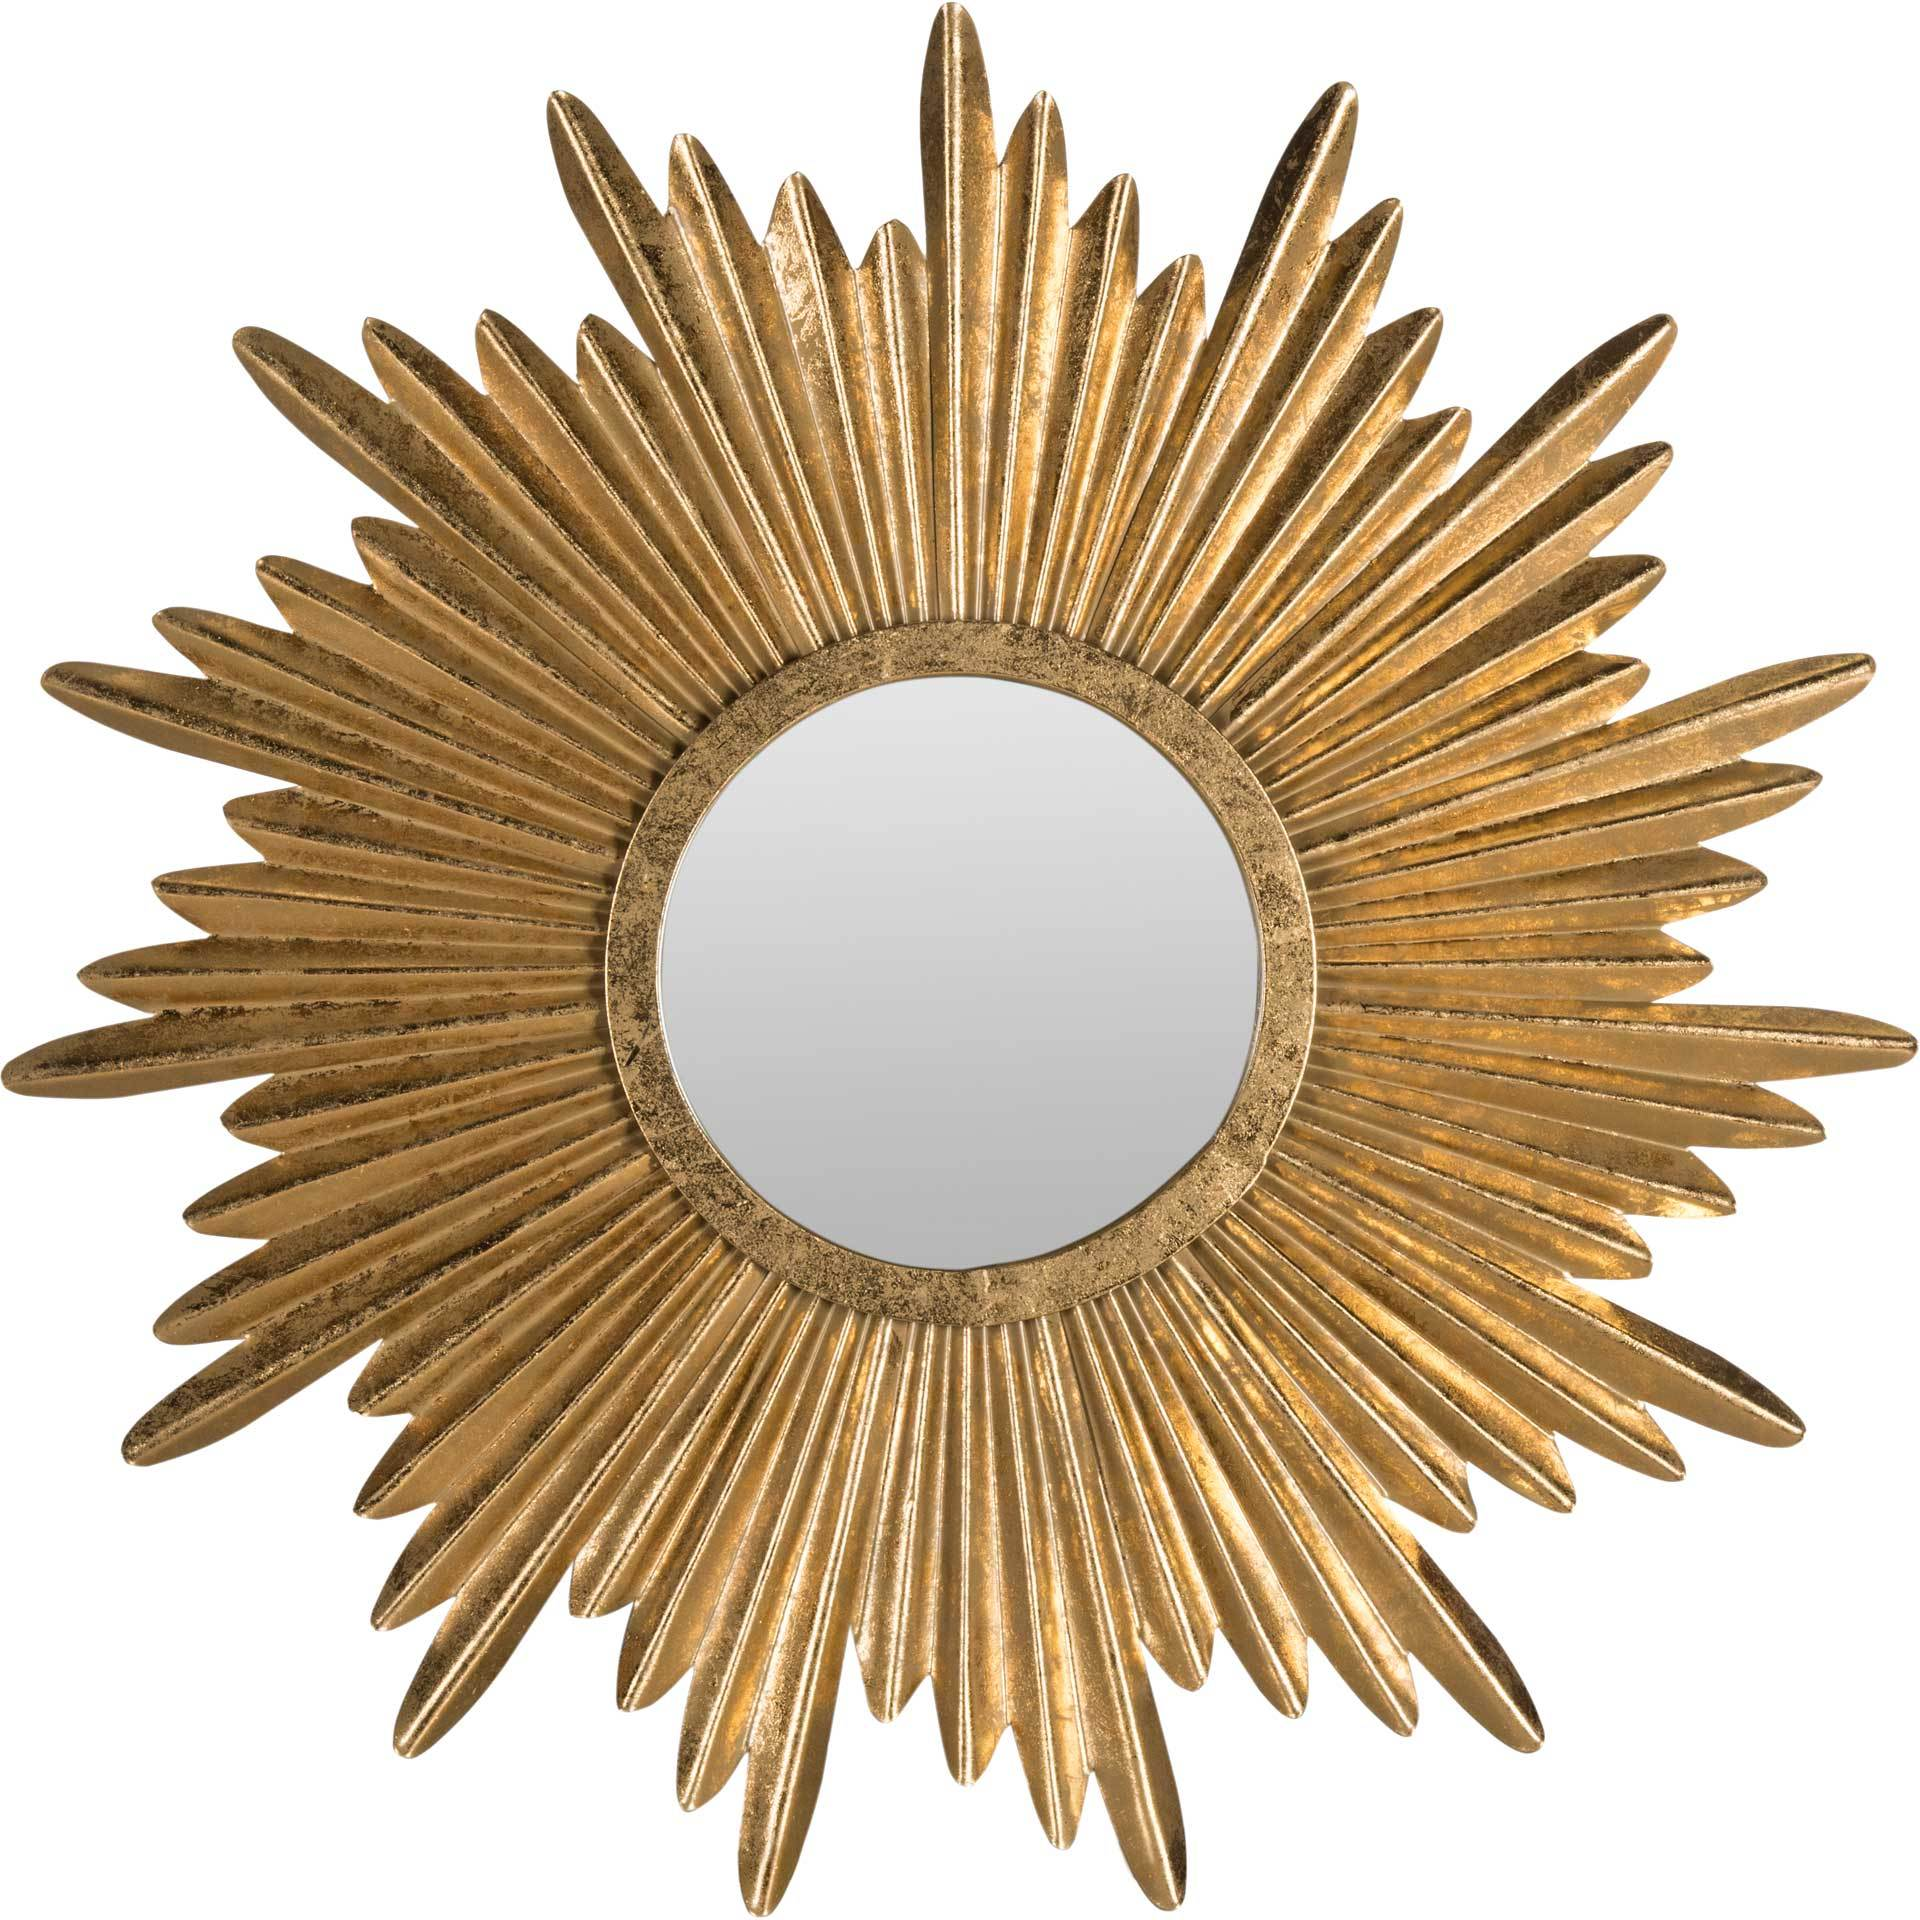 Joseph Sunburst Mirror